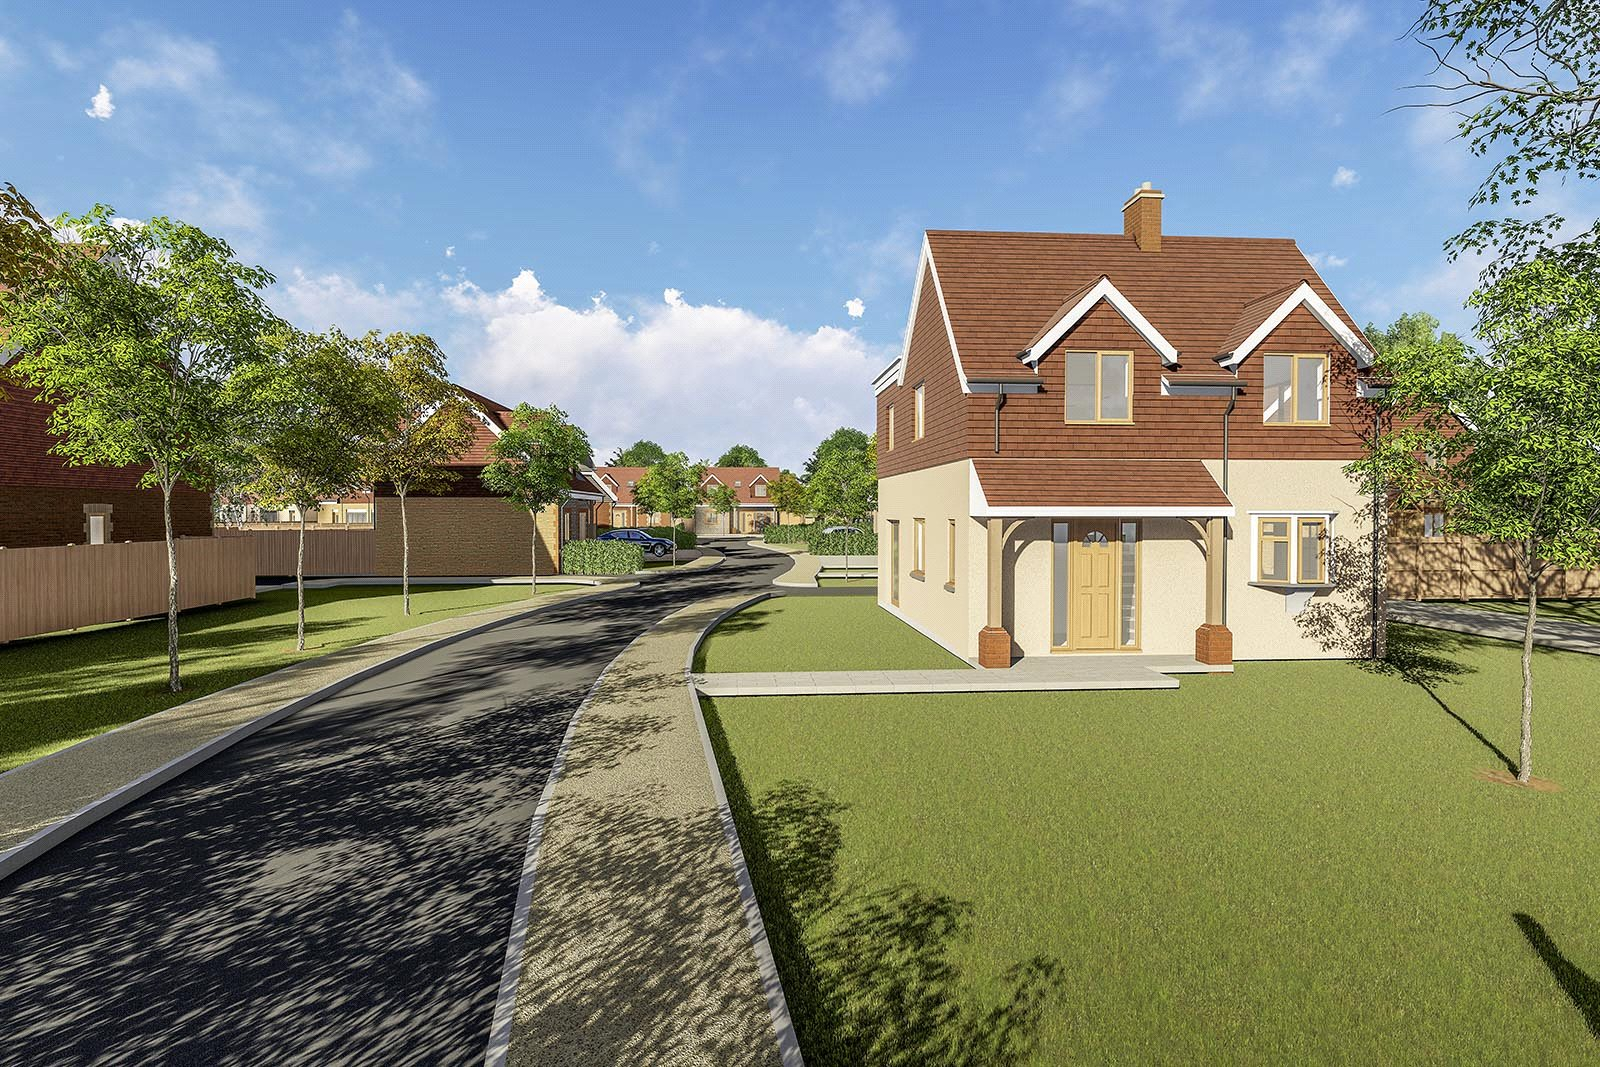 4 bed house for sale in Swallows Gate, Dappers Lane, Angmering  - Property Image 2